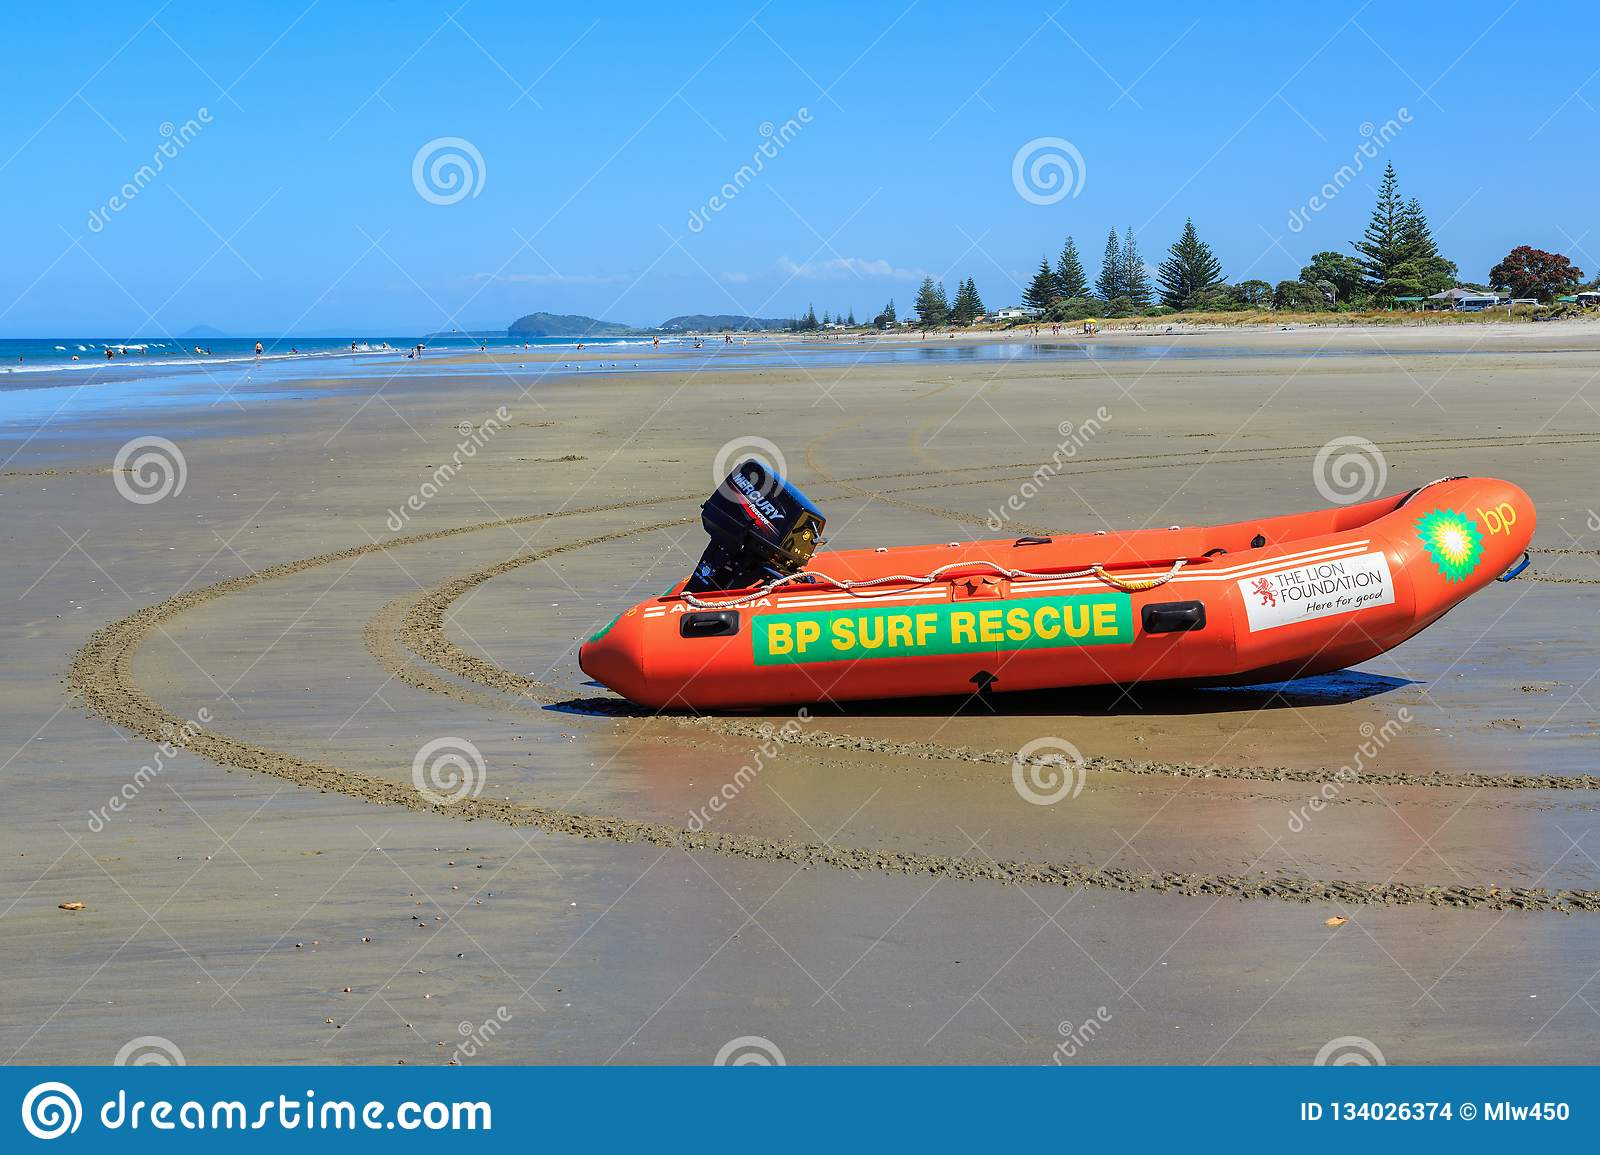 An Inflatable Surf Rescue Boat On A New Zealand Beach